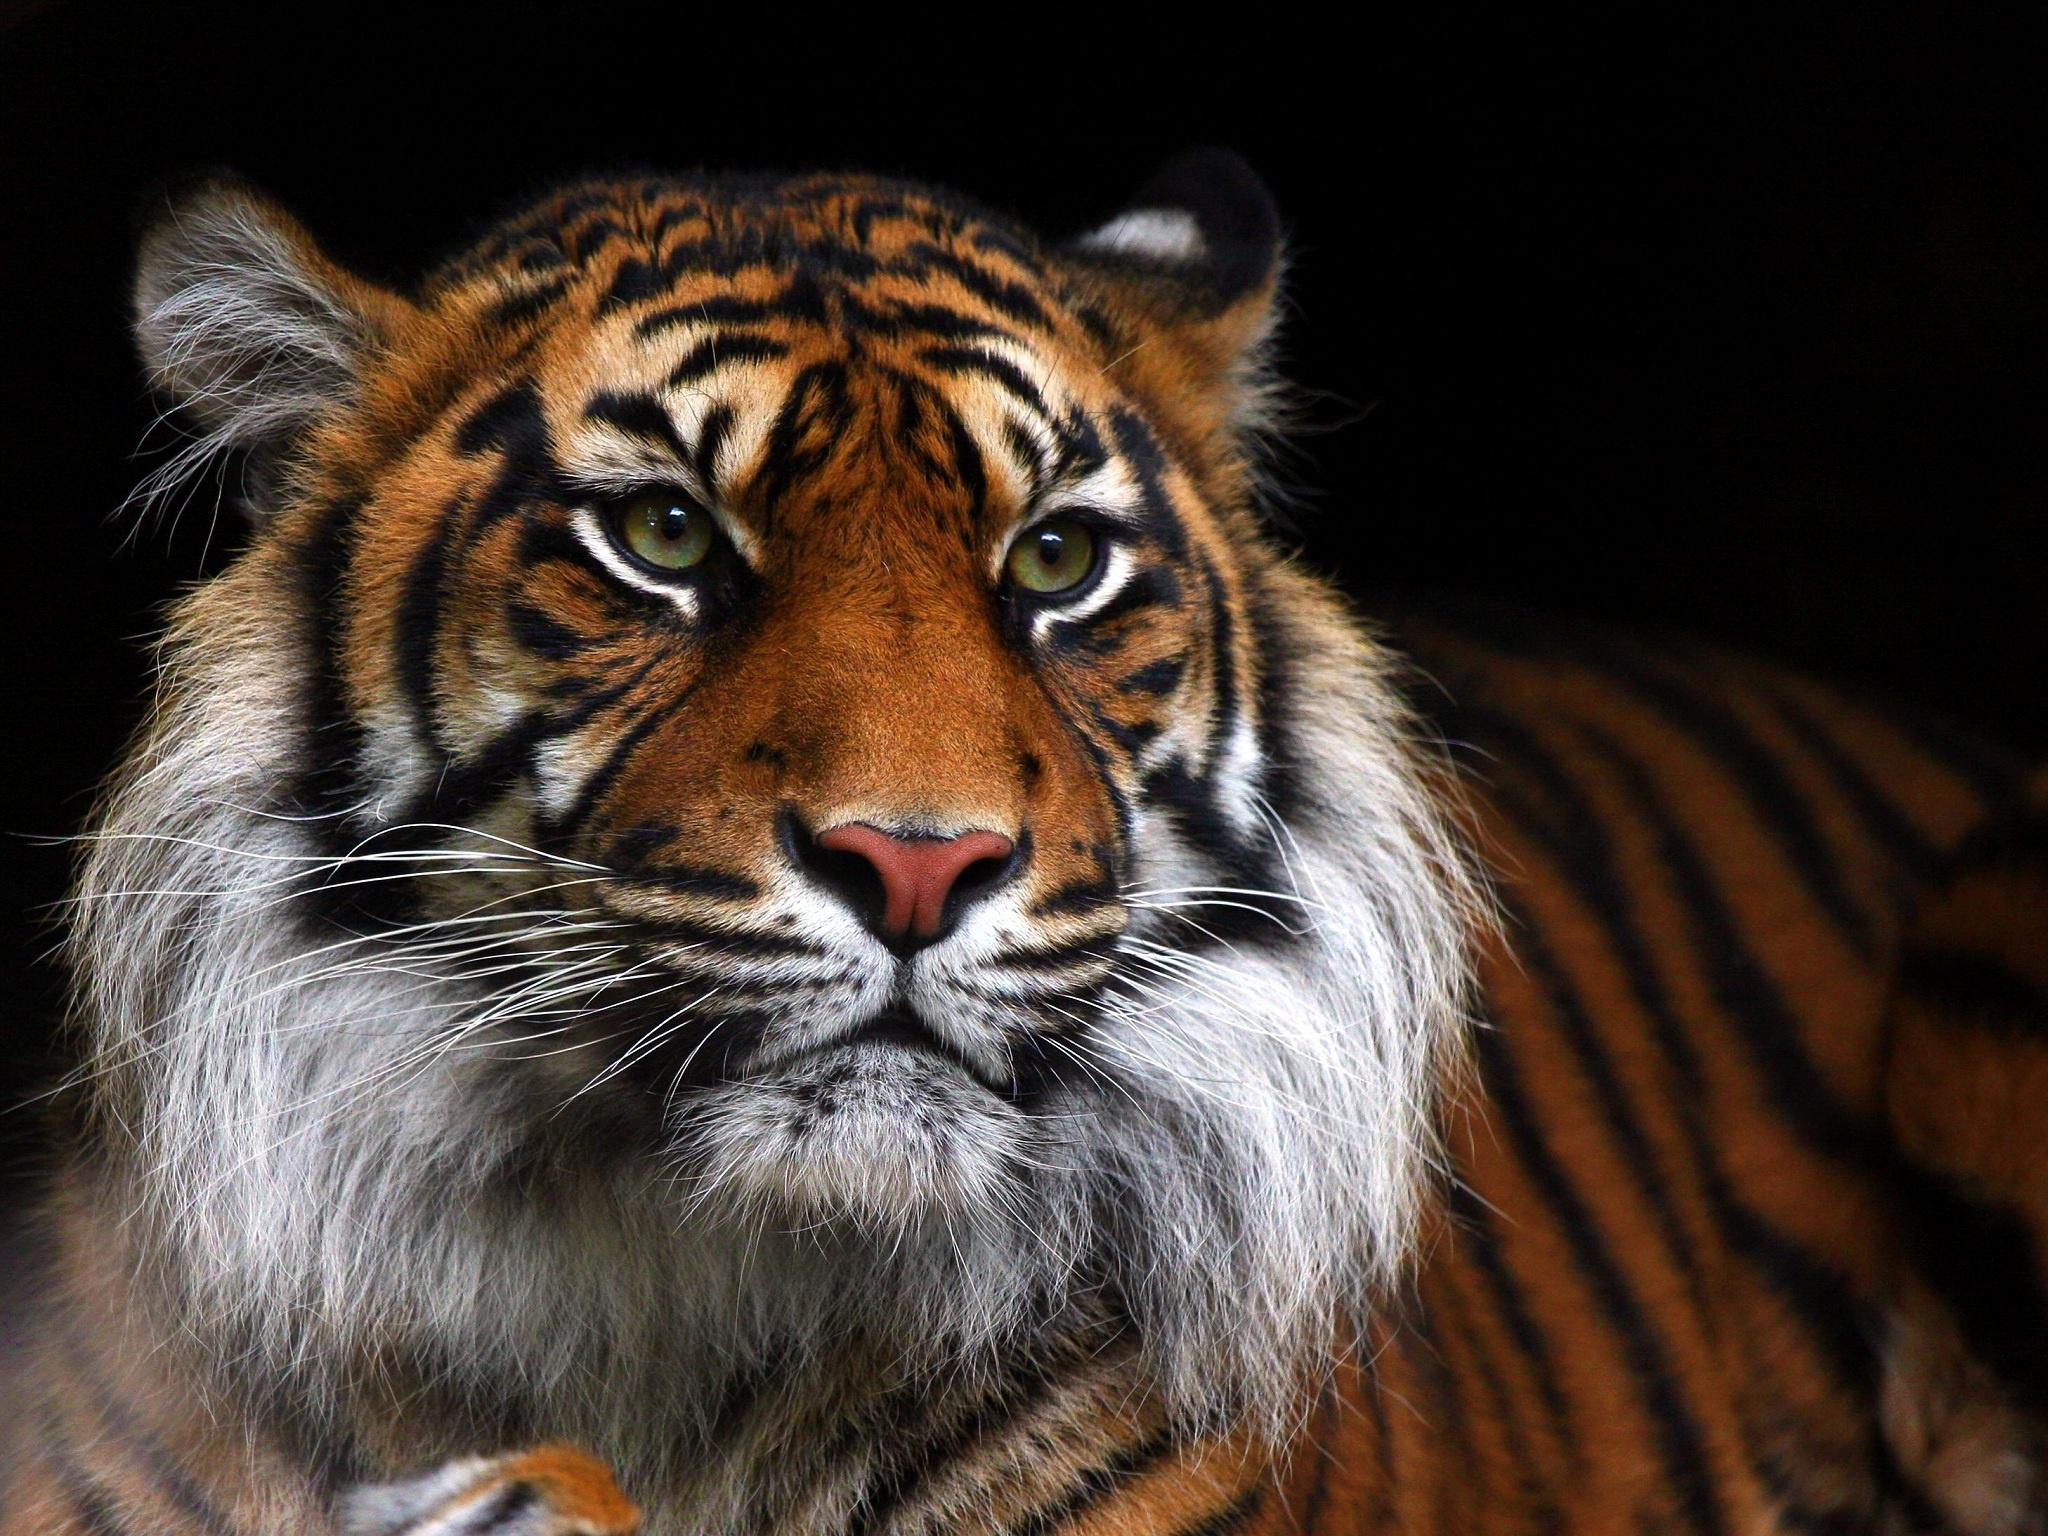 Cute Tiger Cubs Hd Wallpapers Hd Tiger Wild Cat Muzzle Android Wallpaper Download Free